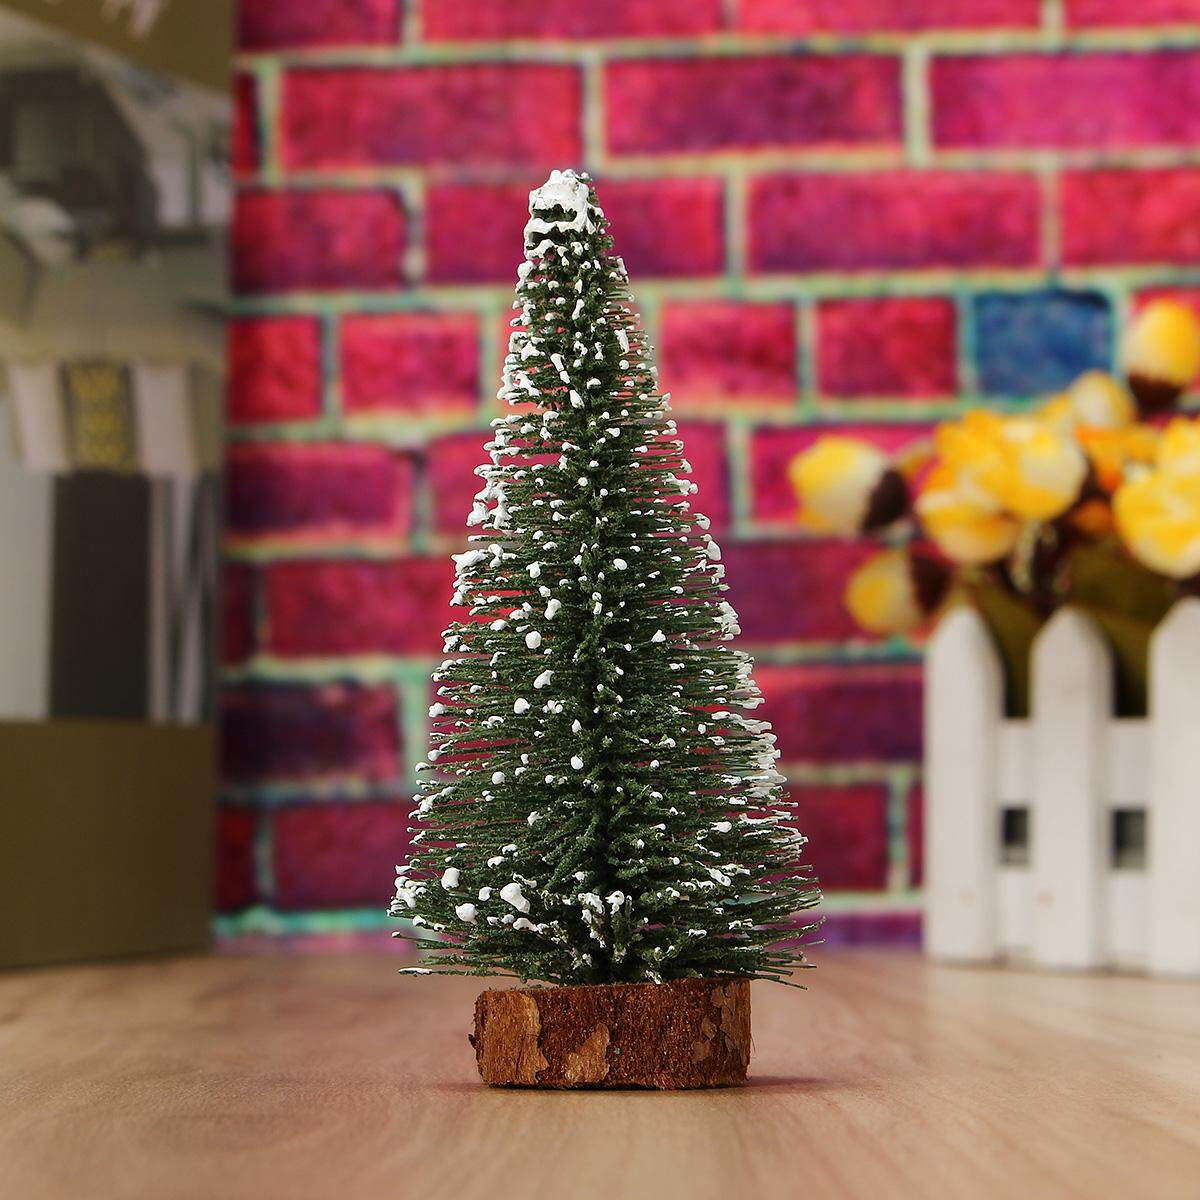 【Ready Stock】Mini Small Christmas Tree Festival Home Party Ornaments Xmas House Decor